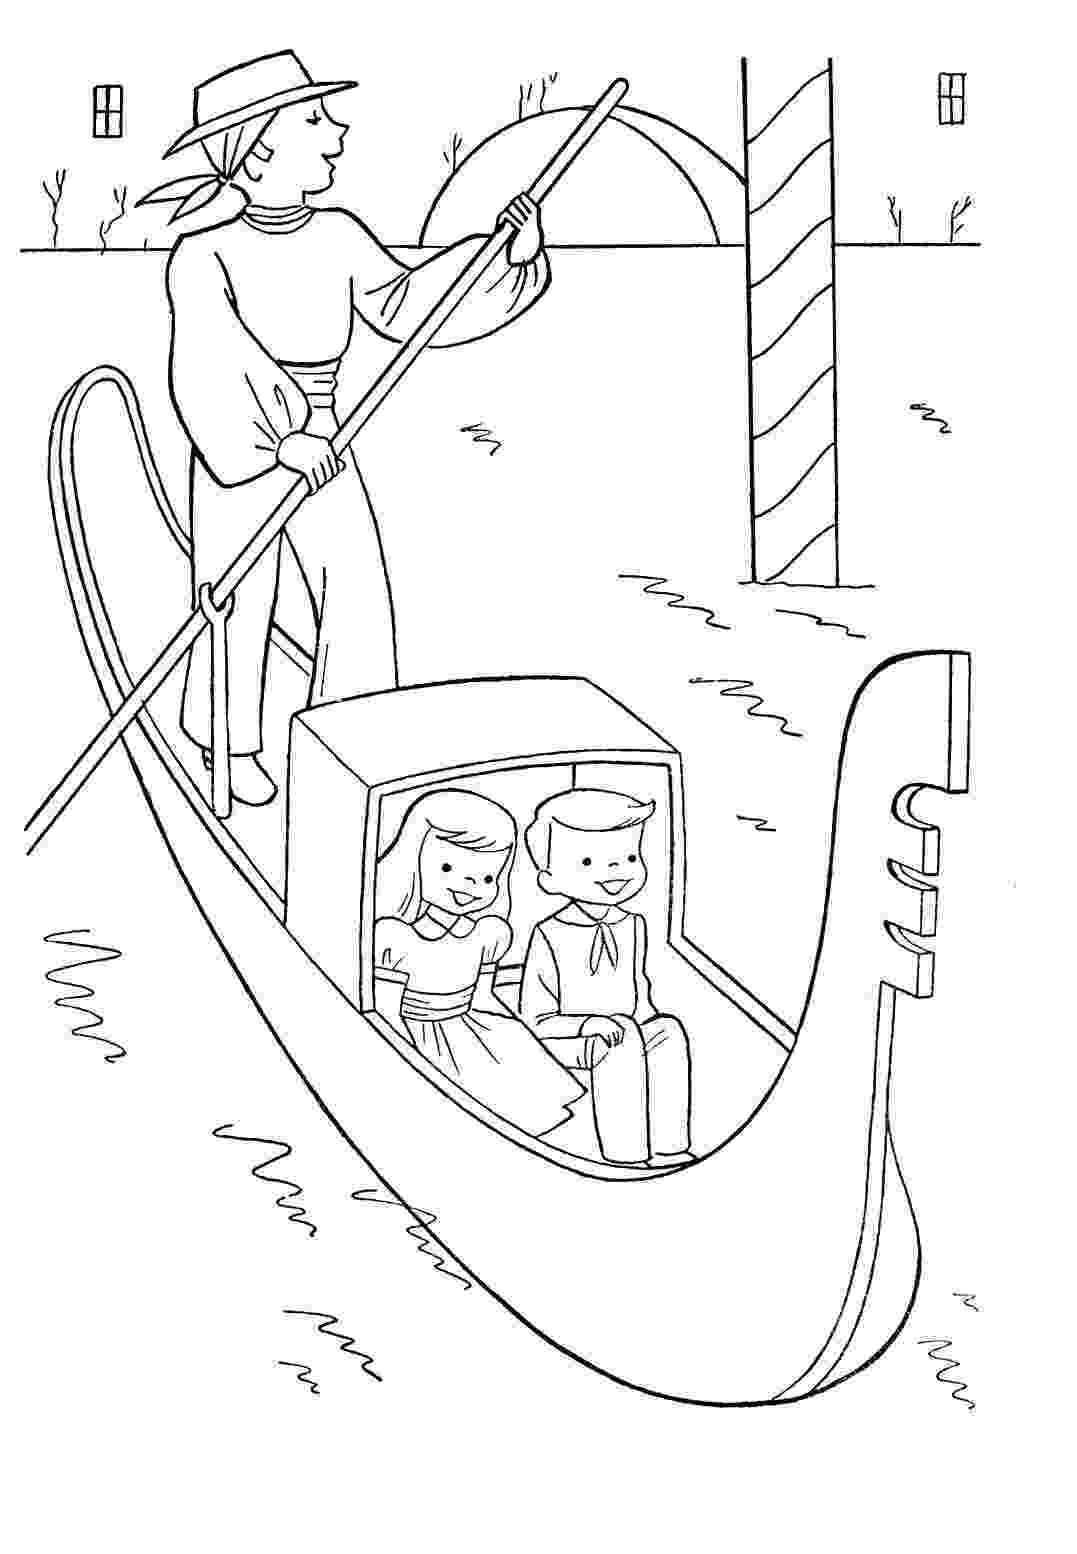 coloring pages of italy coloring sheets for italy 26 italy coloring pages italy of italy coloring pages